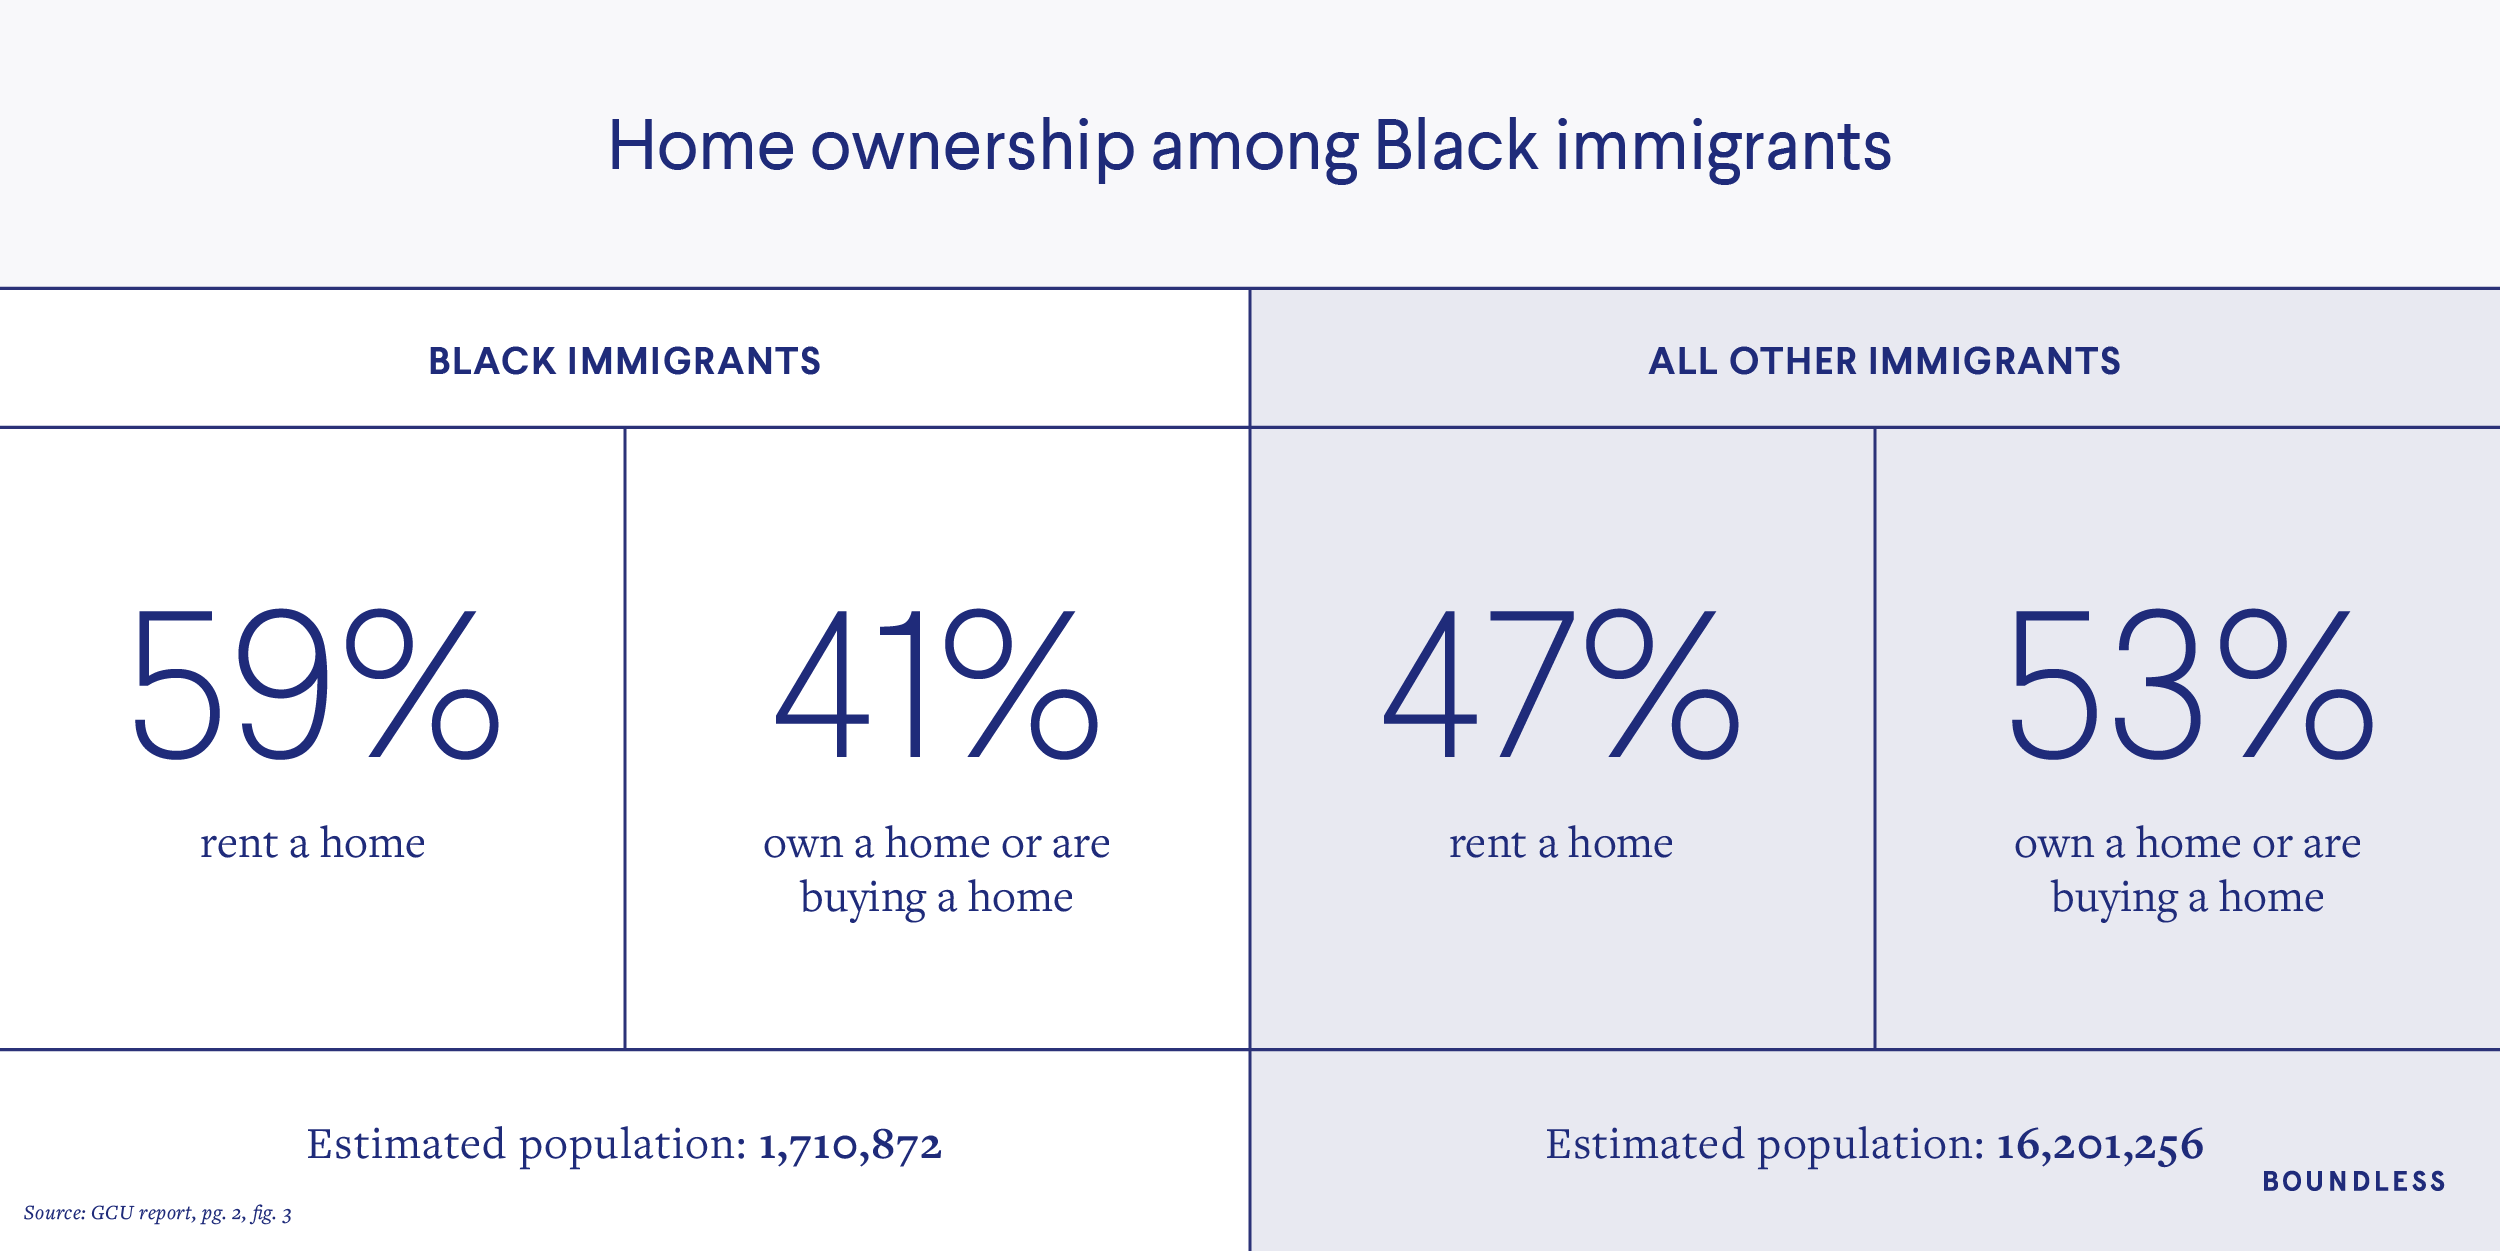 Home ownership among Black immigrants